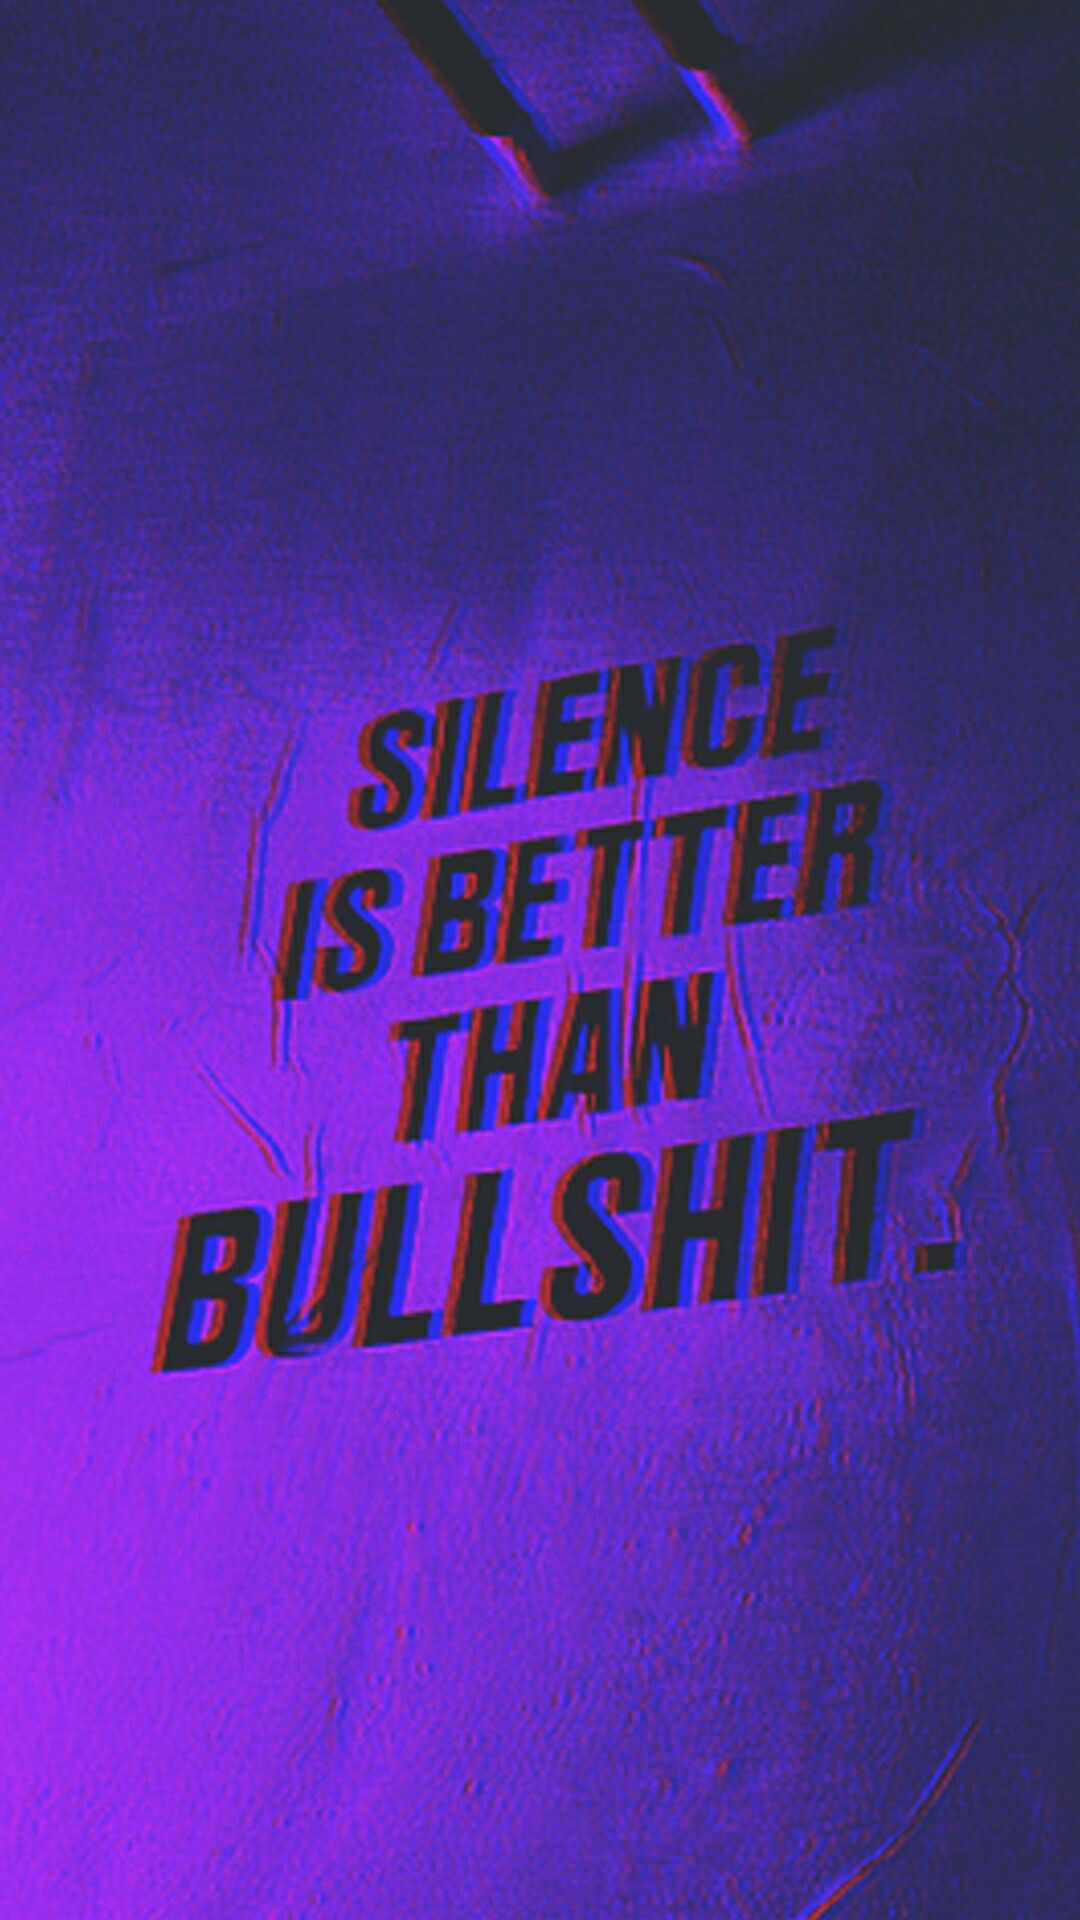 But Im Really Not Enjoying This Silence Rn